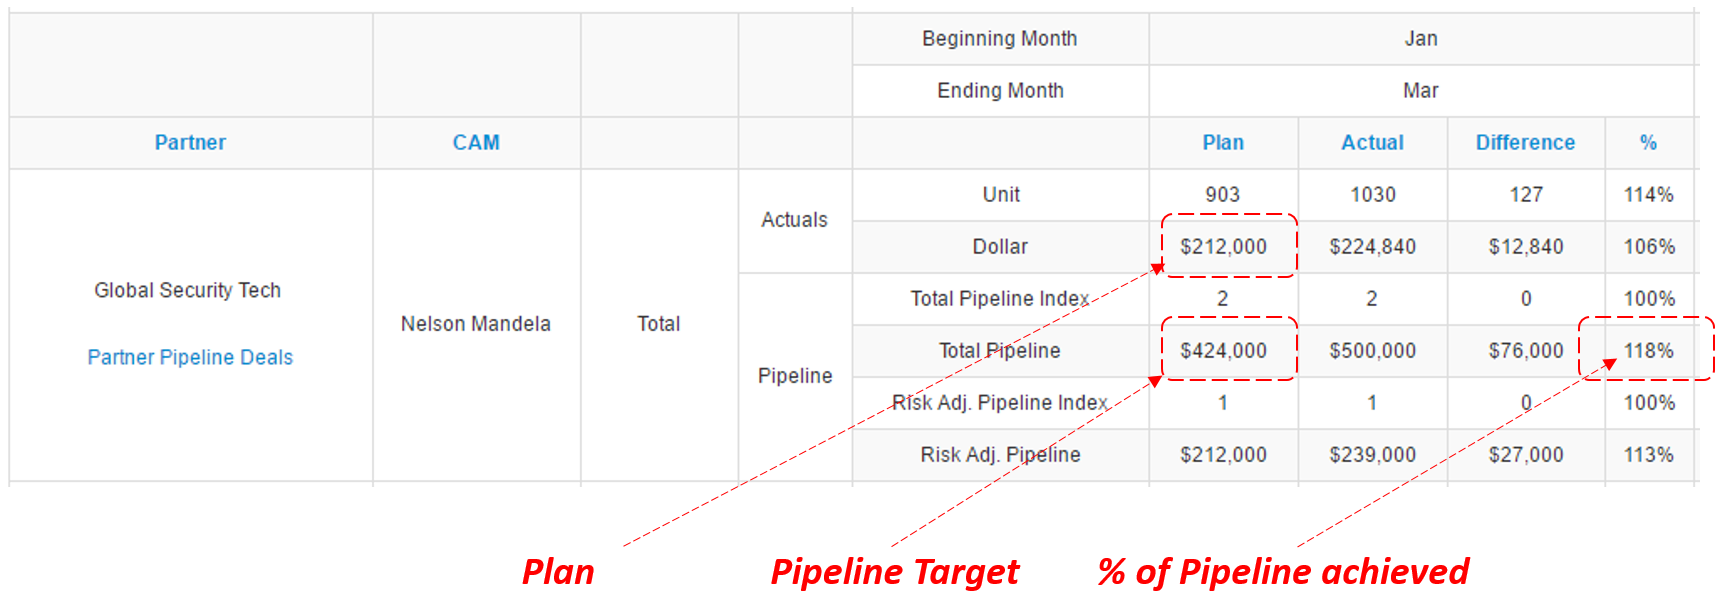 Pipeline Target and Pipeline Achieved